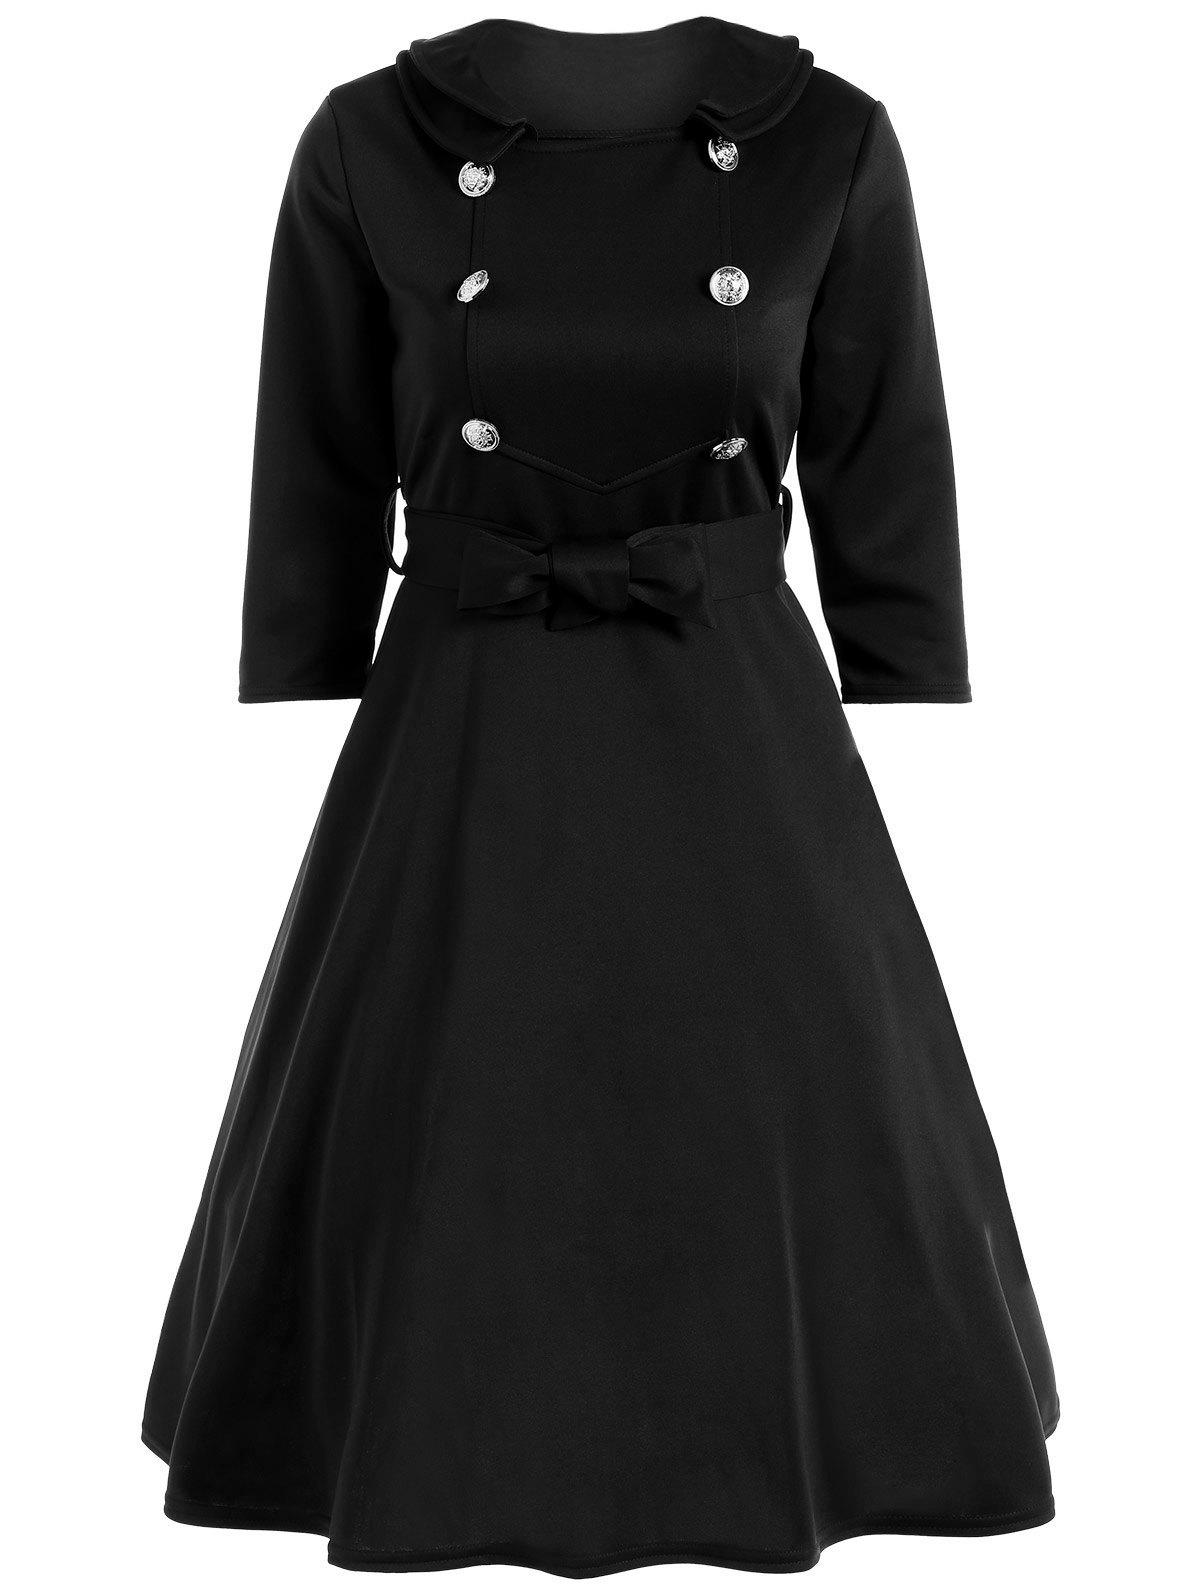 Cheap Bowknot Belted Swing Dress